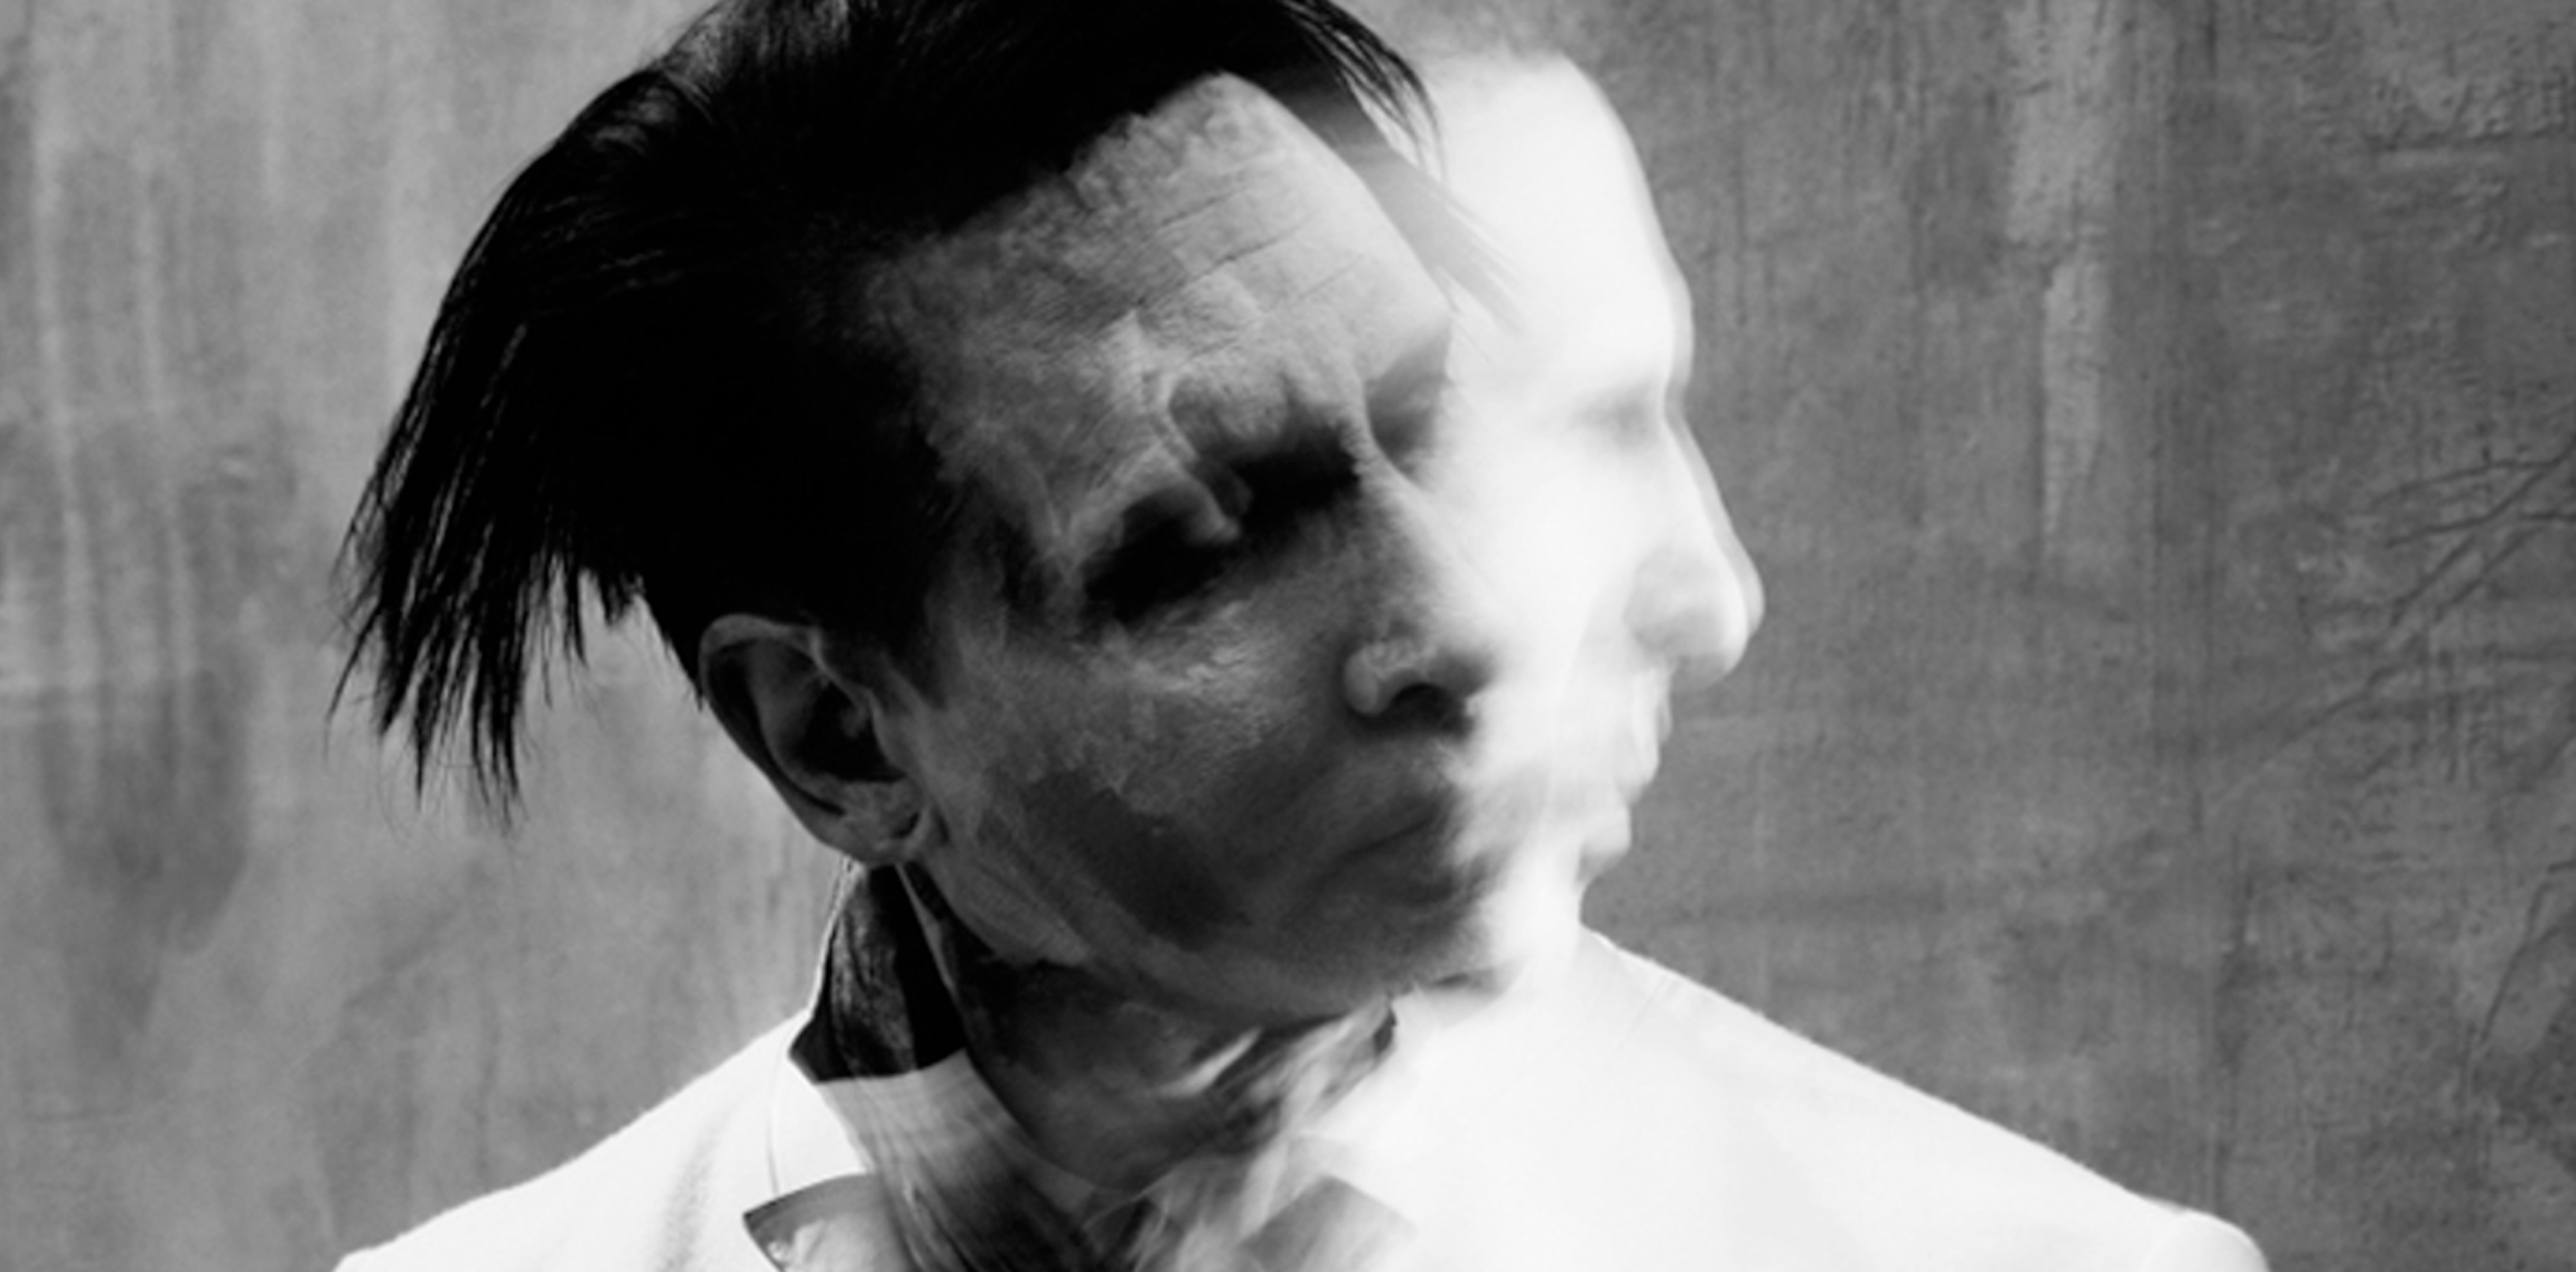 a comparison between marilyn manson and the pope People think charles manson is marilyn manson & it's resulting in some very unfortunate tweets some people learned to tell the difference between the two men.